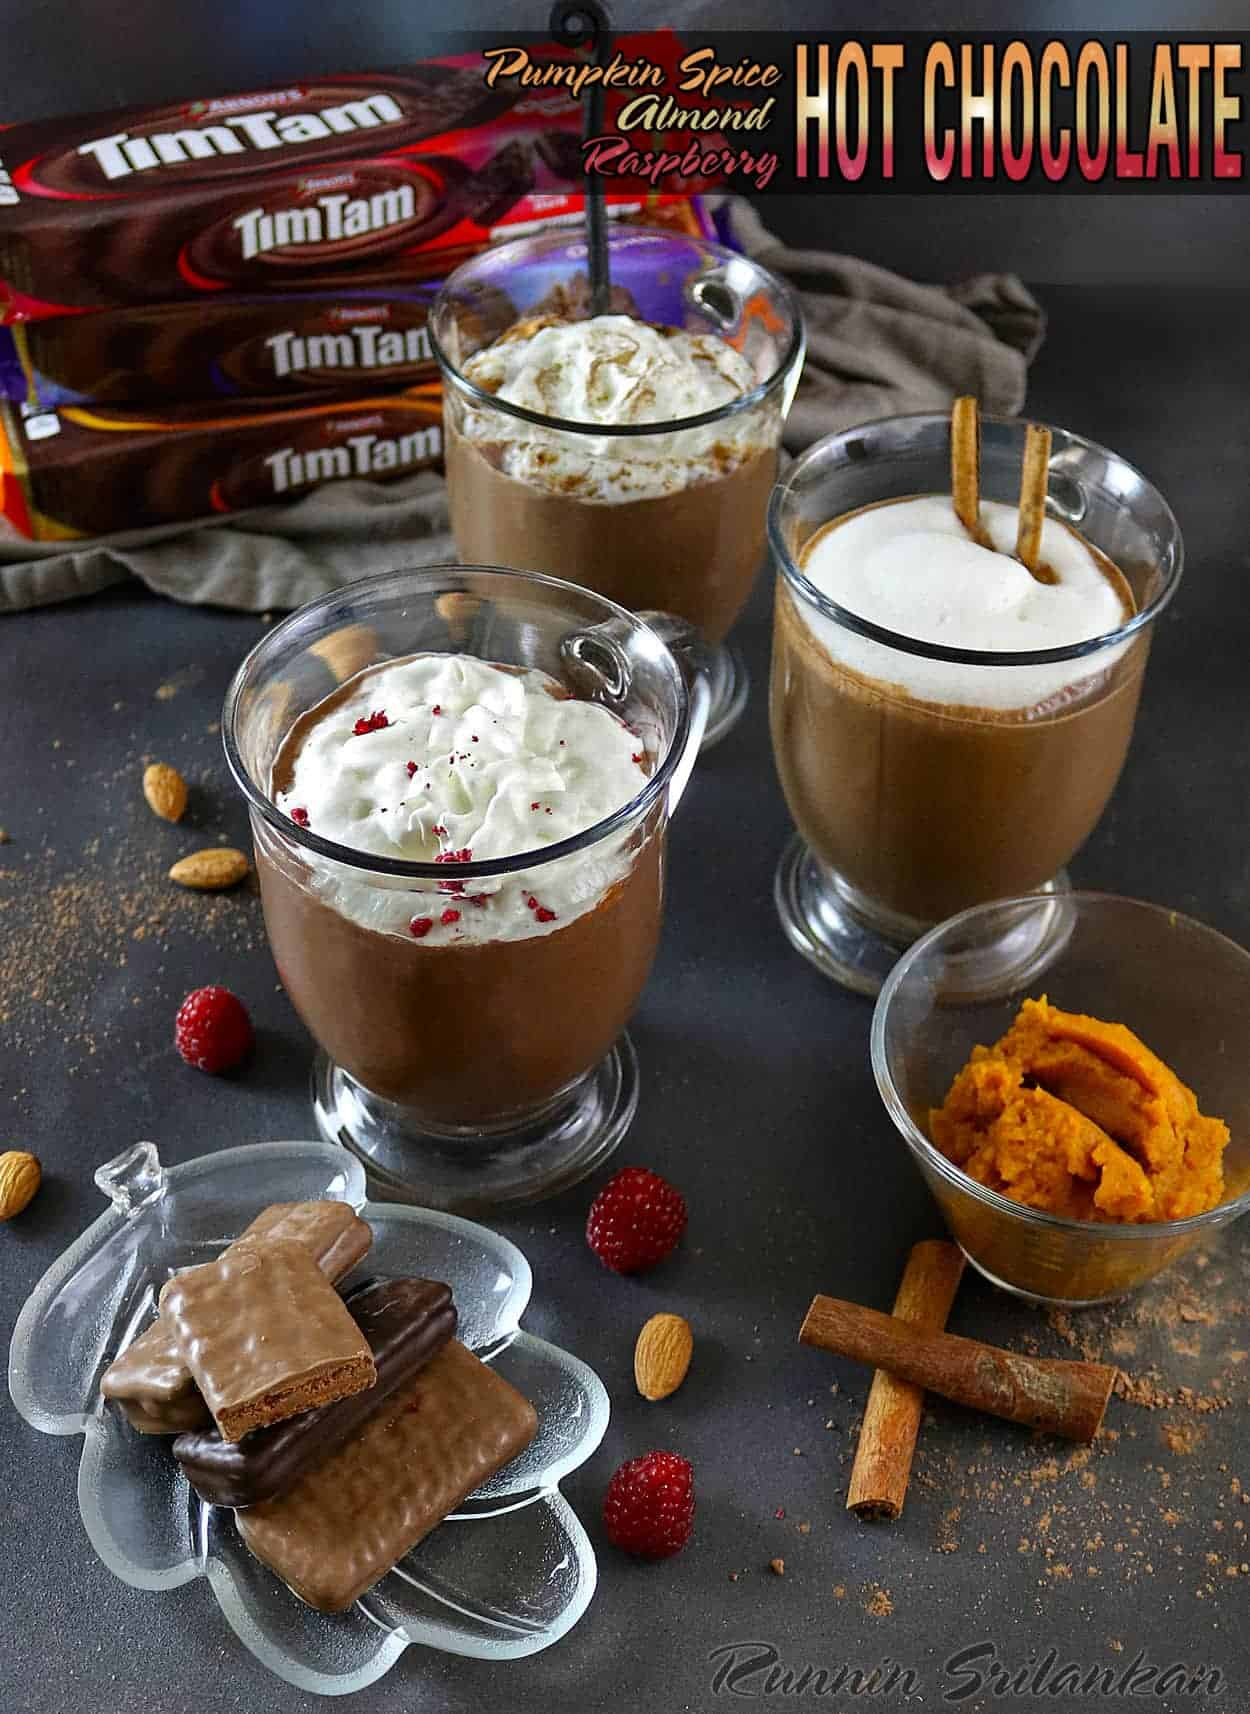 Pumpkin Spice, Almond, & Raspberry Hot Chocolates perfect with Tim Tams #ad #TimTamFriends